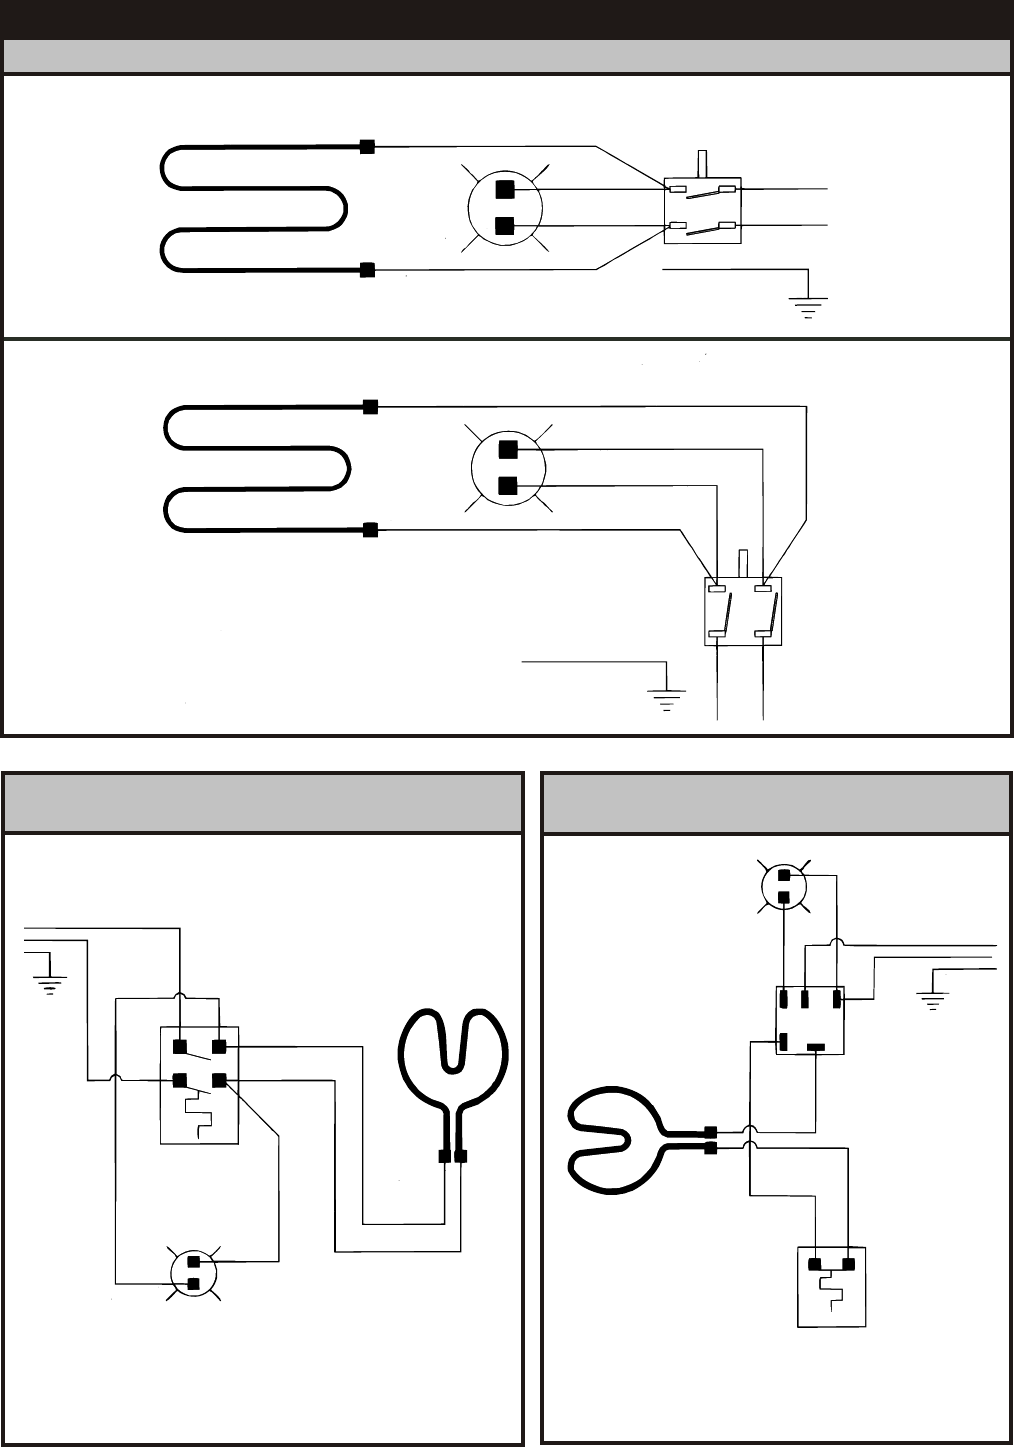 ca7b3e15 4662 41e6 adbd 34fa5e64b3e9 bg8 robertshaw oven thermostat wiring diagram tamahuproject org  at edmiracle.co